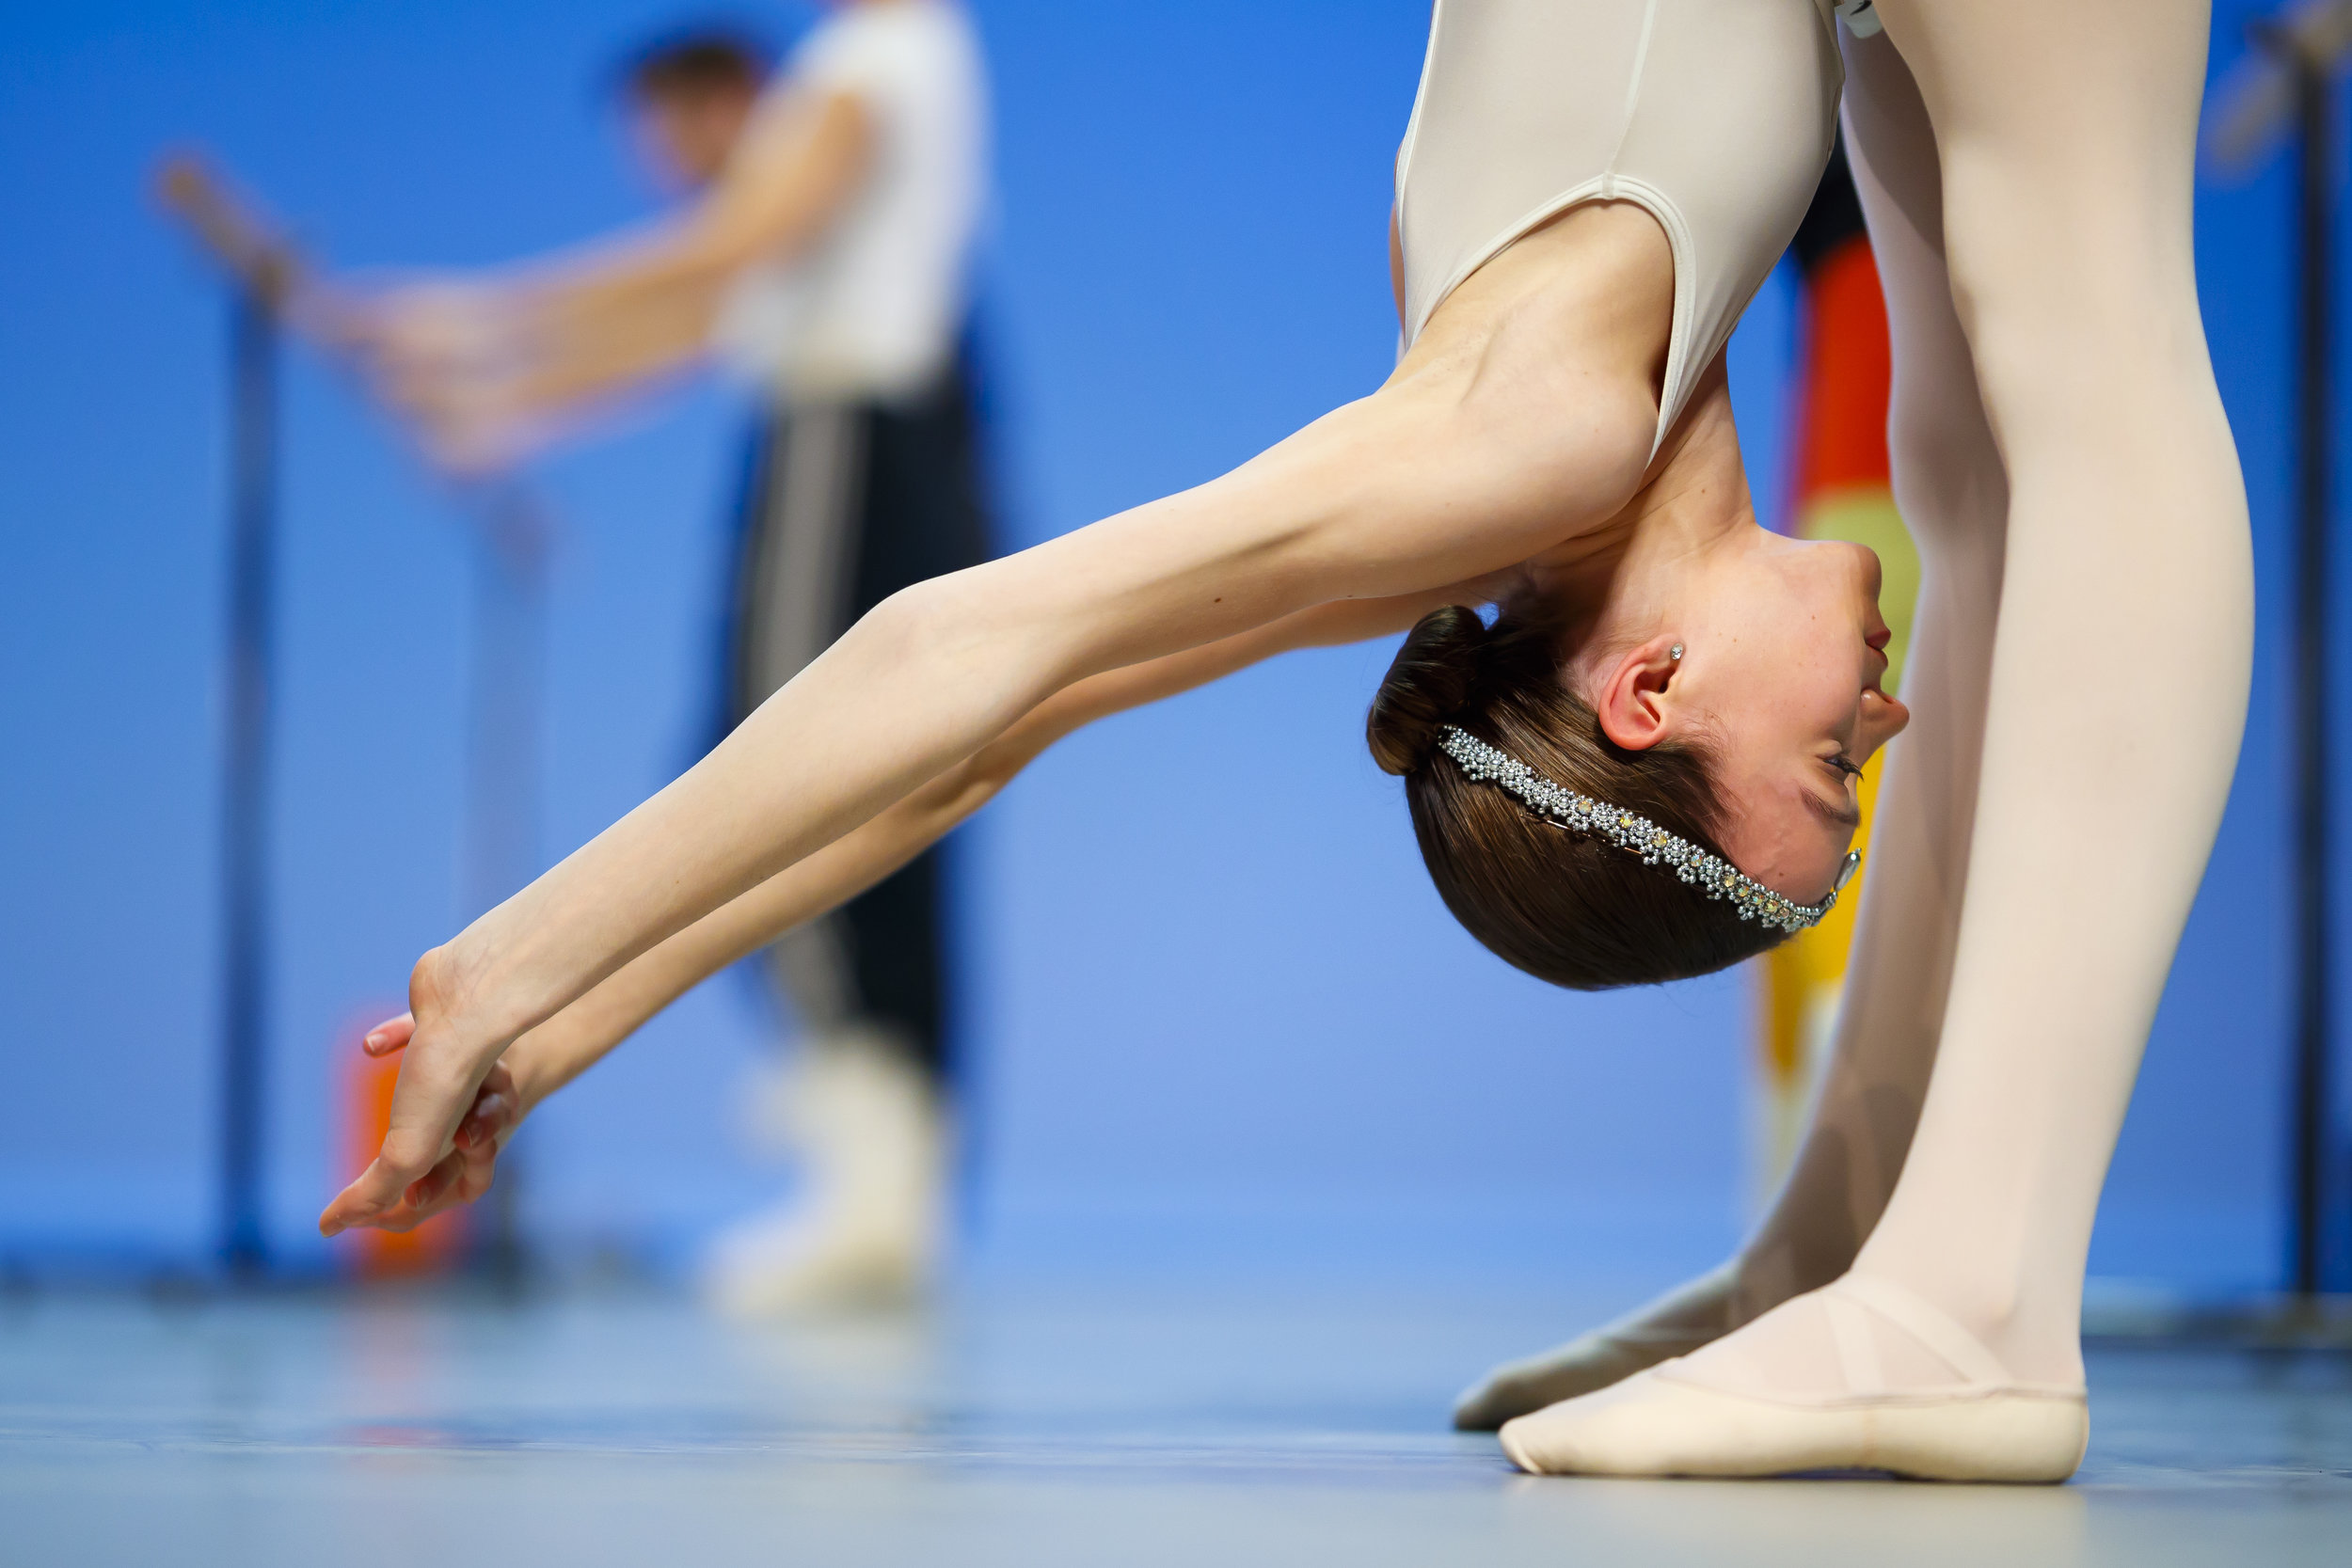 Mackenzie Brown from the U.S. warms up on stage before the final of the 47th Prix de Lausanne in Lausanne, Switzerland, Saturday, February 9, 2019. Launched in 1973, the Prix de Lausanne is an international dance competition for young dancers aged 15 to 18. Closing the six-day event, scholarships granting free tuition in a world-renowned dance school or dance company are awarded to the best dancers out of 74 participants this year. (KEYSTONE/Valentin Flauraud)